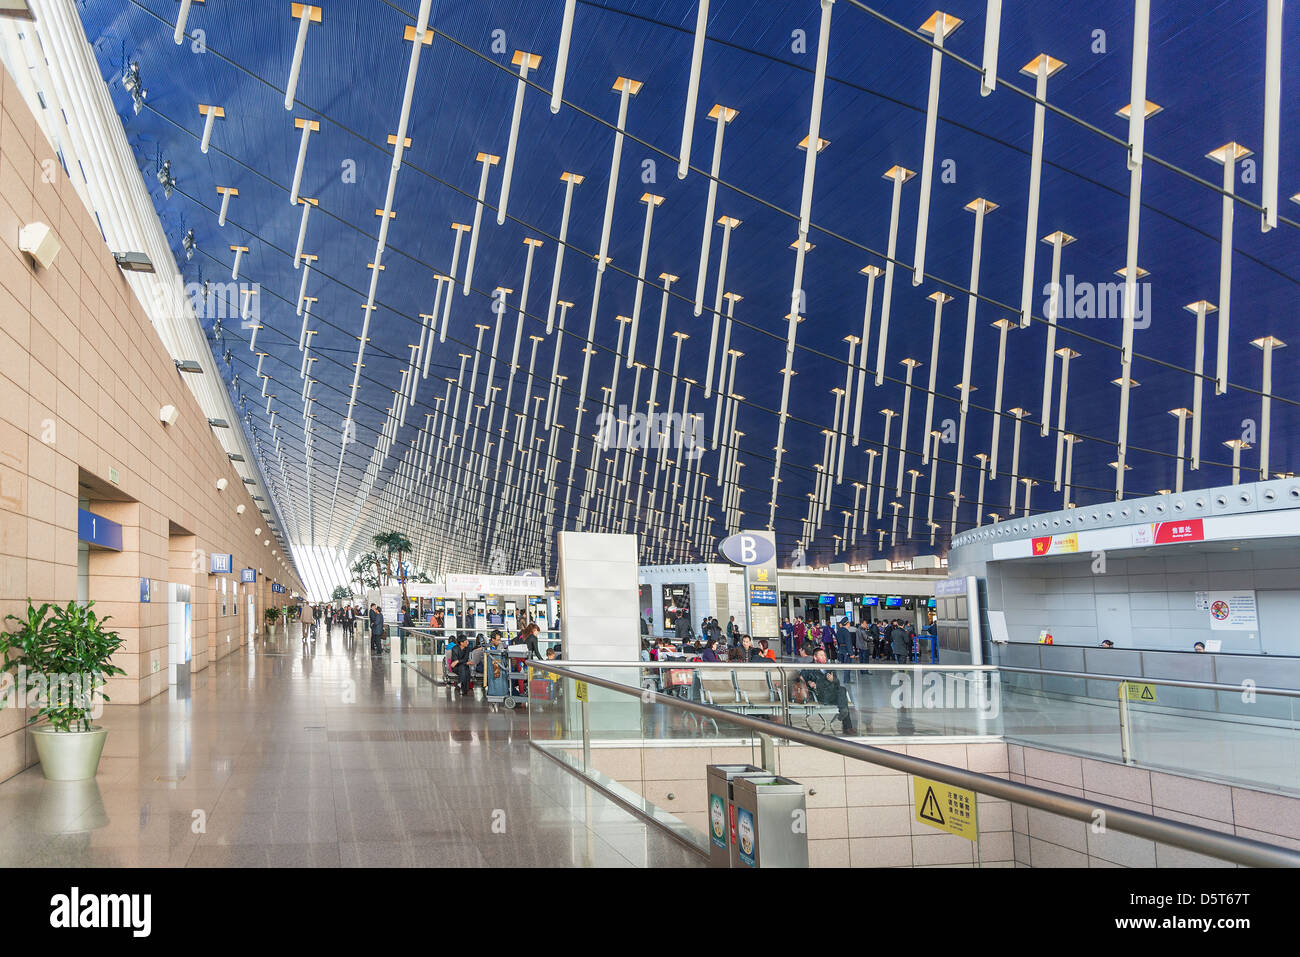 Roof Interior Design Shanghai Pudong Airport Interior In China Stock Photo